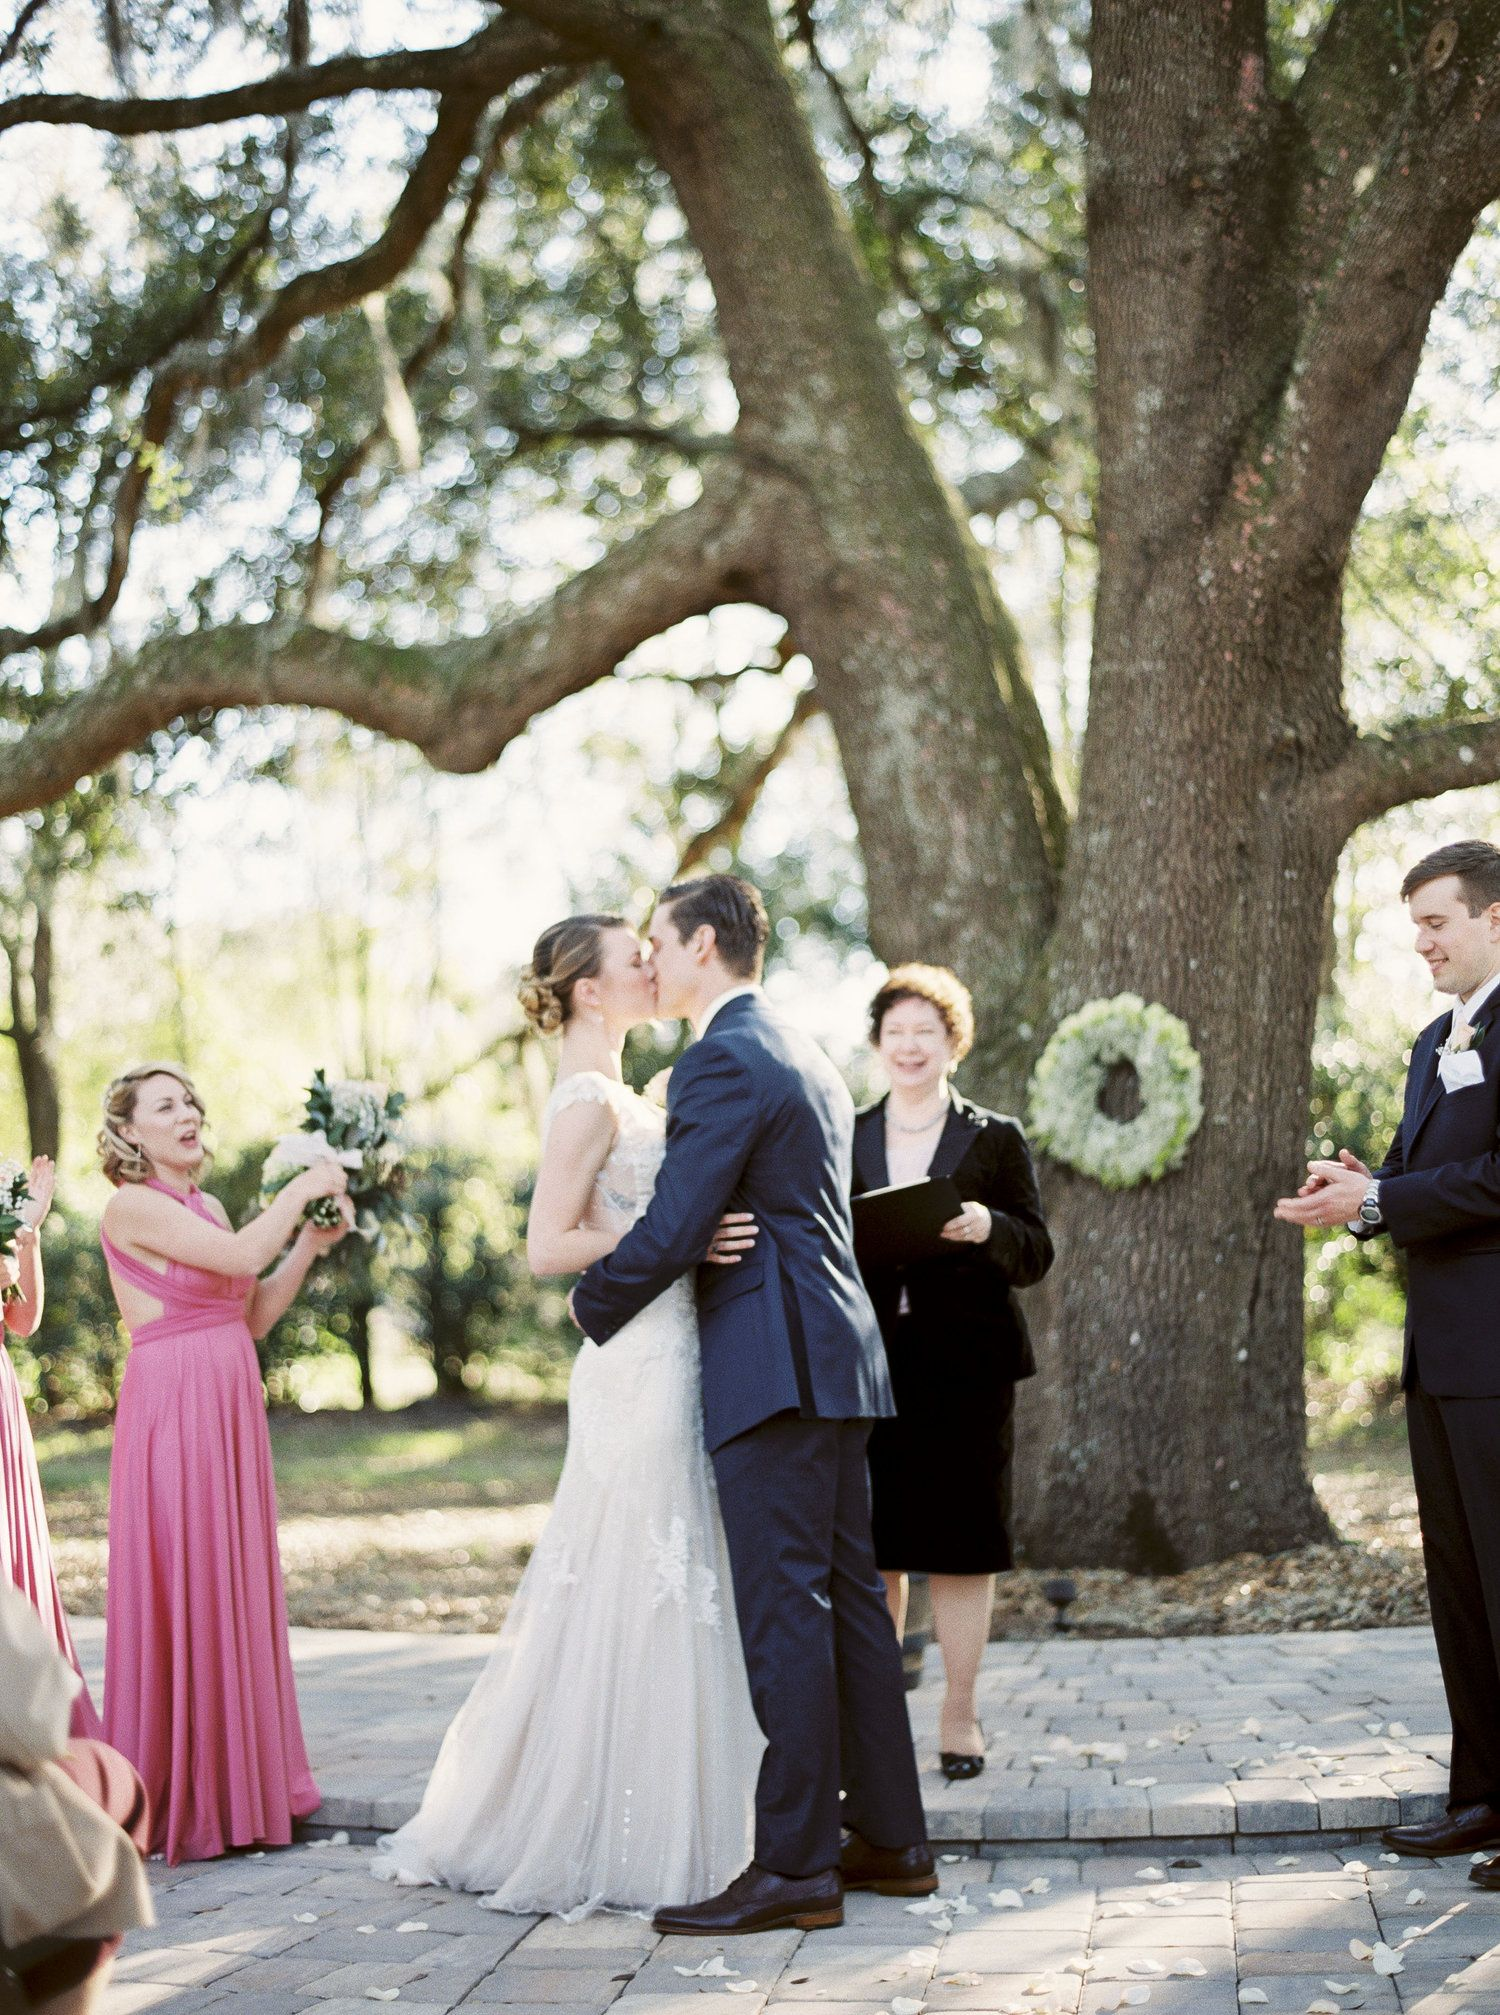 Whenus the best time to get married outside for amazing photos